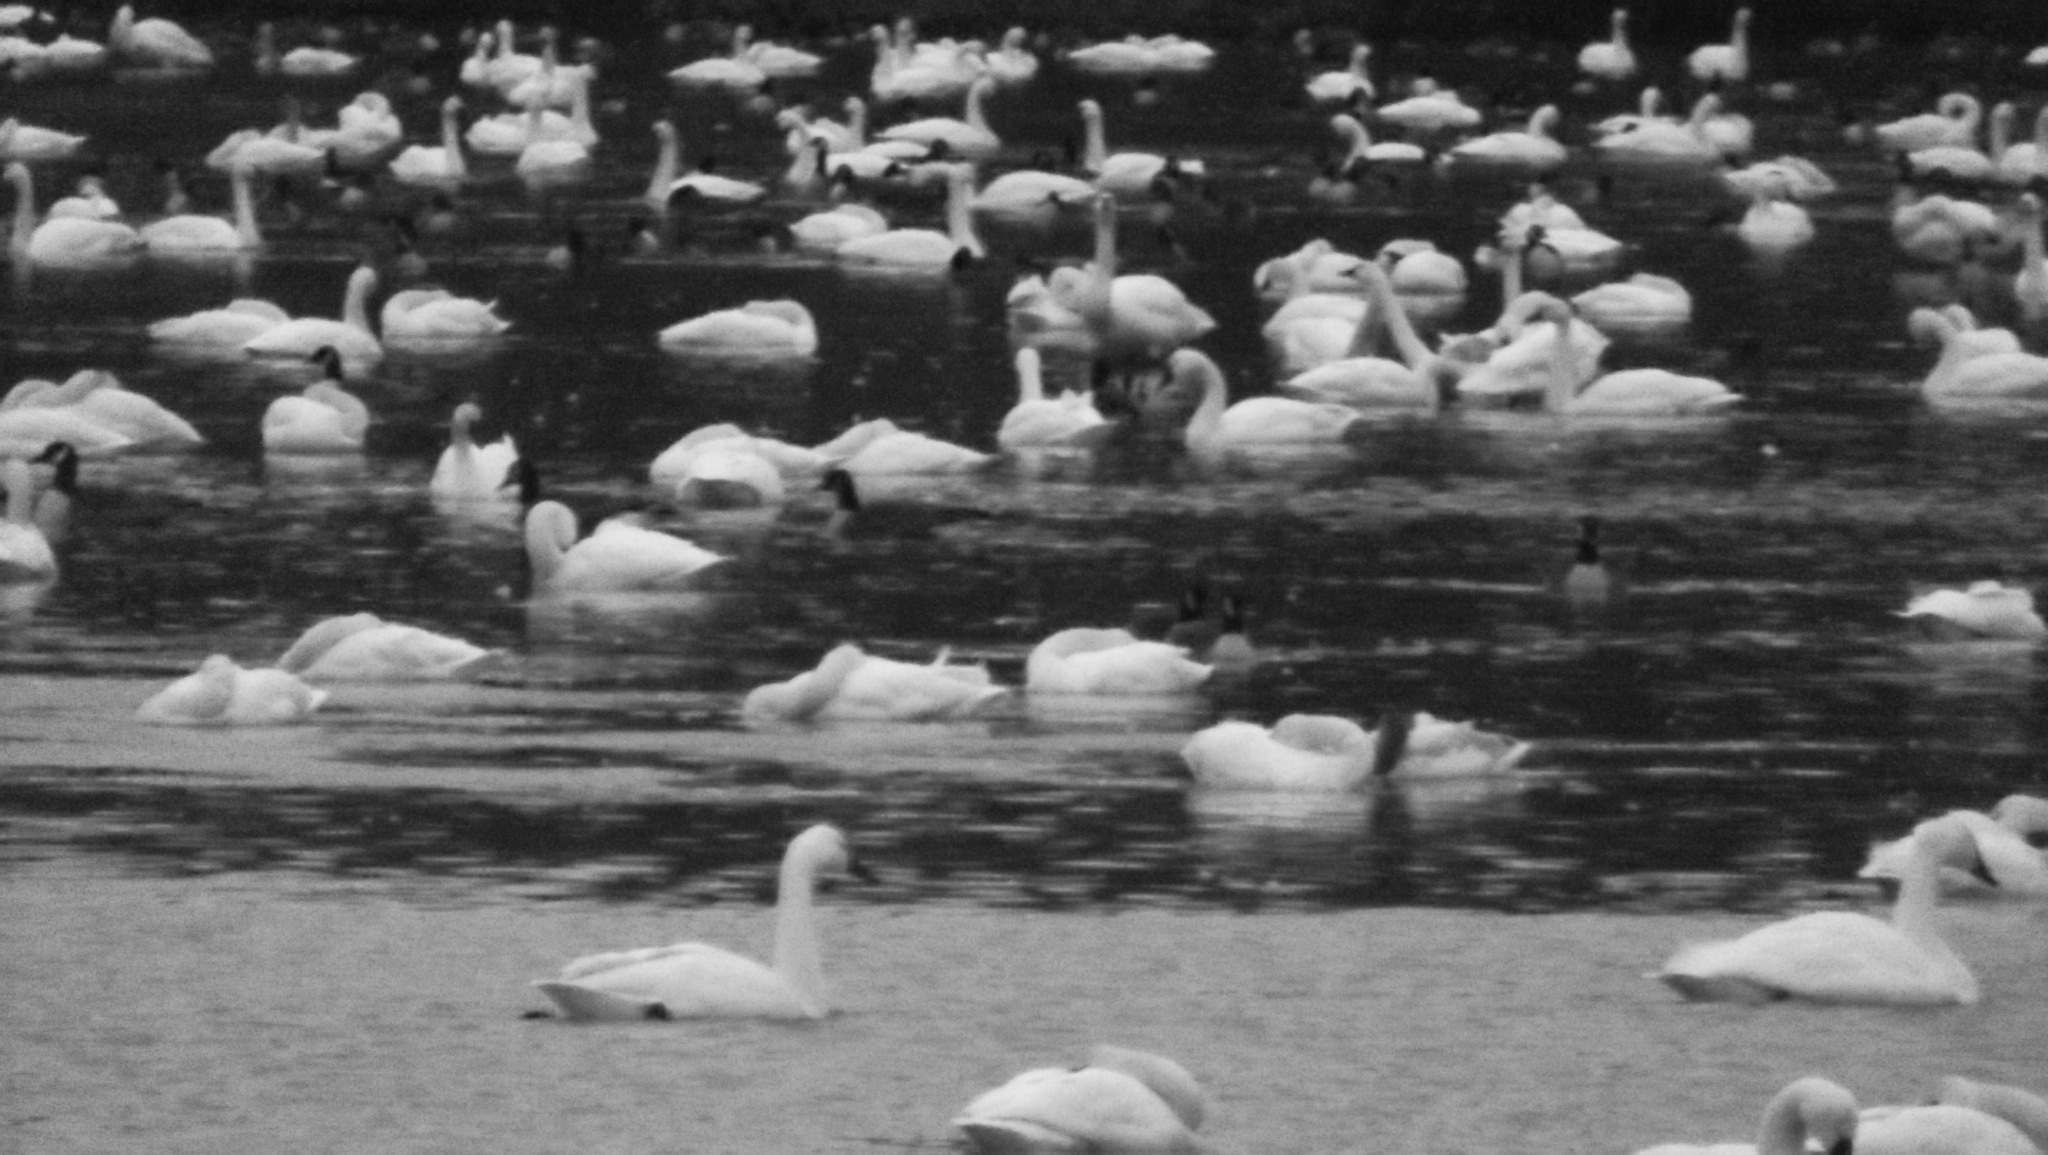 Snow Geese in Black and White by MicheleHoffman